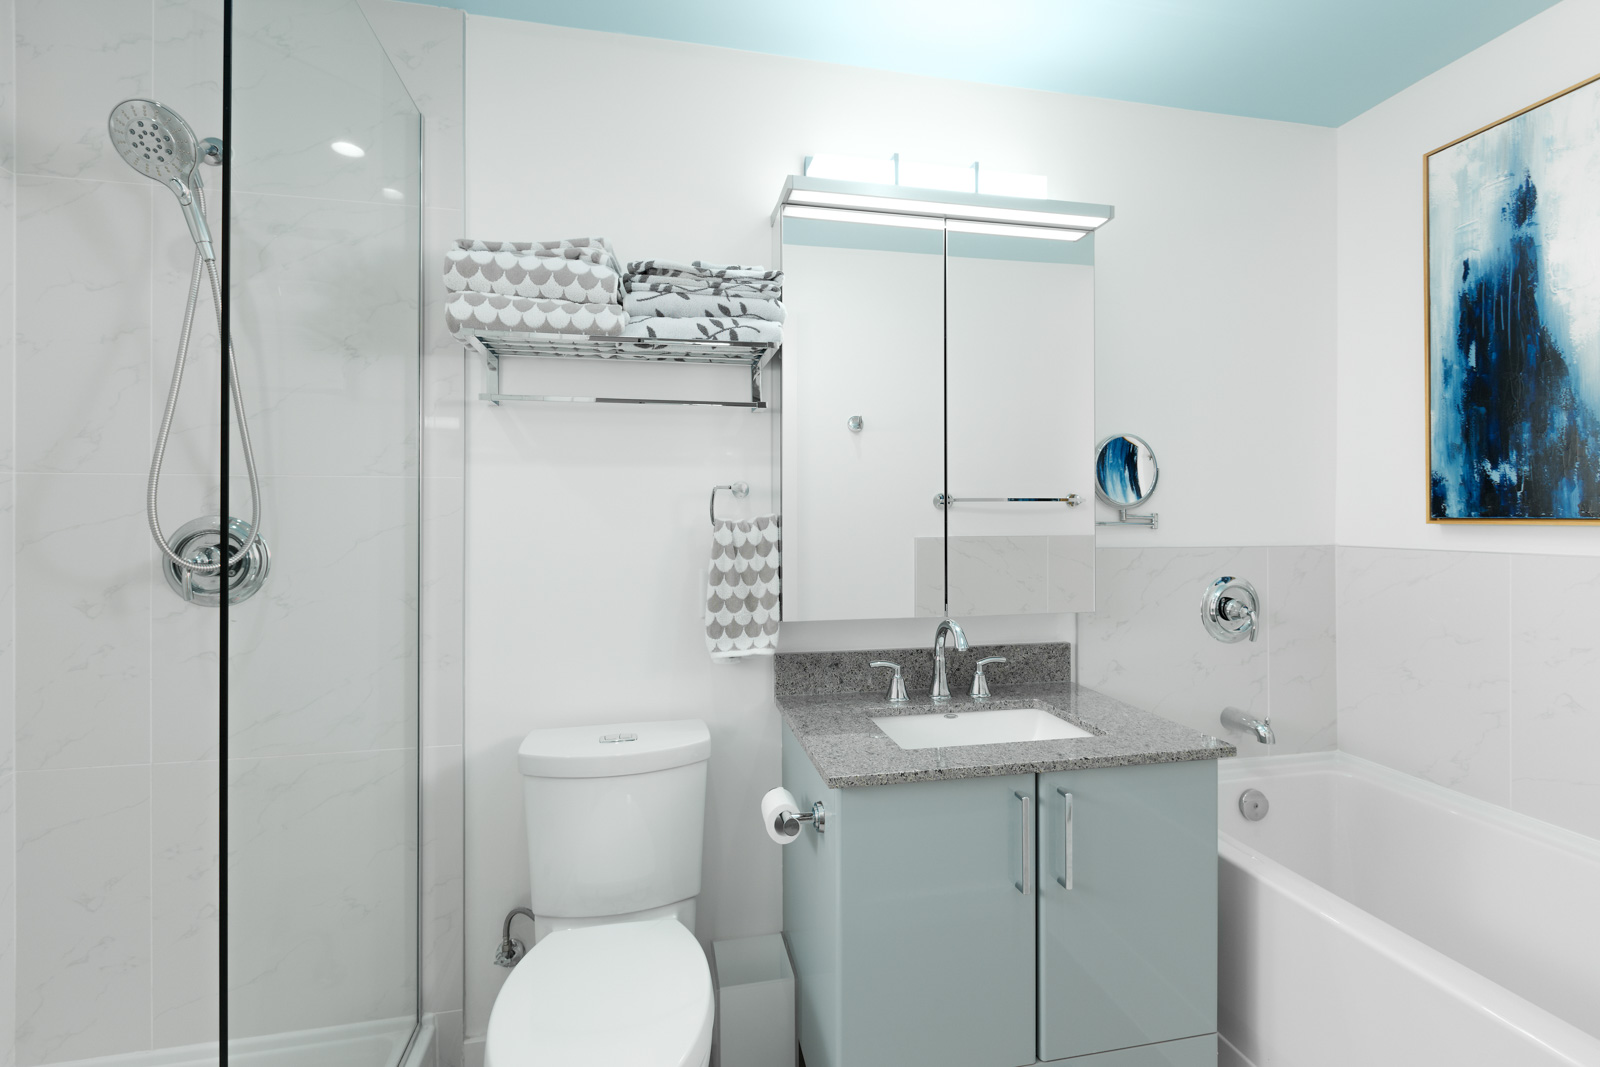 bathroom with showers on the left, bath tub on the right